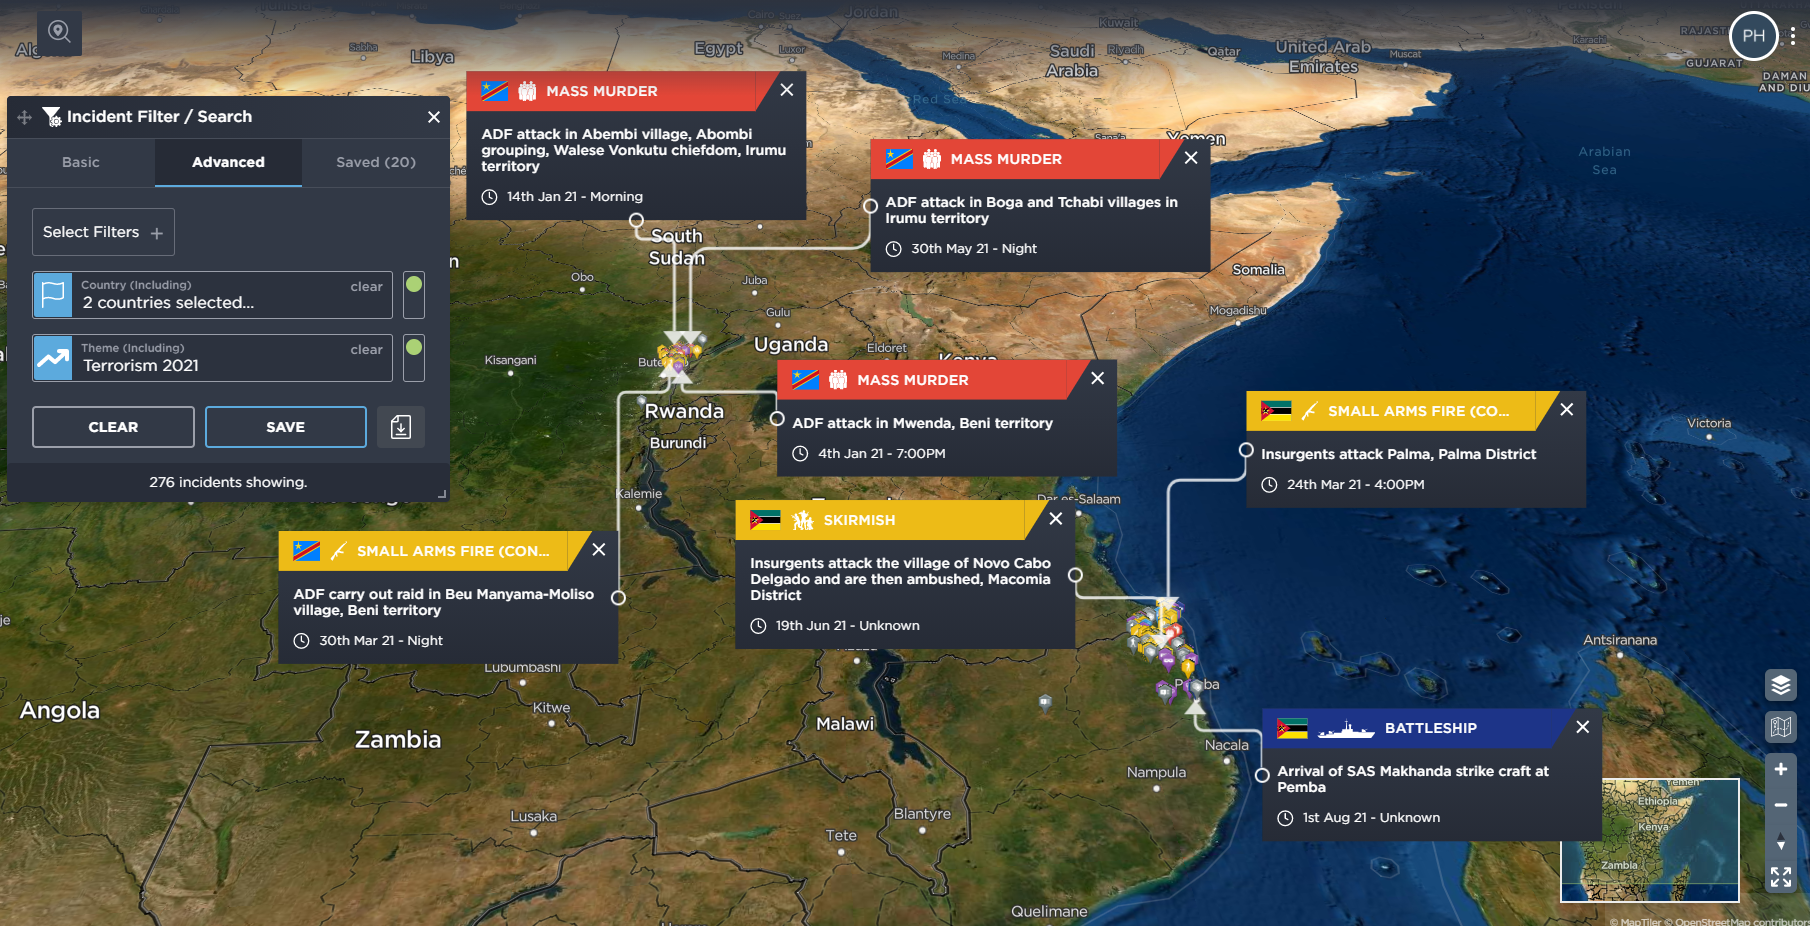 Islamic State Central Africa Province ISCAP ISIS Mozambique terrorism DRC Congo